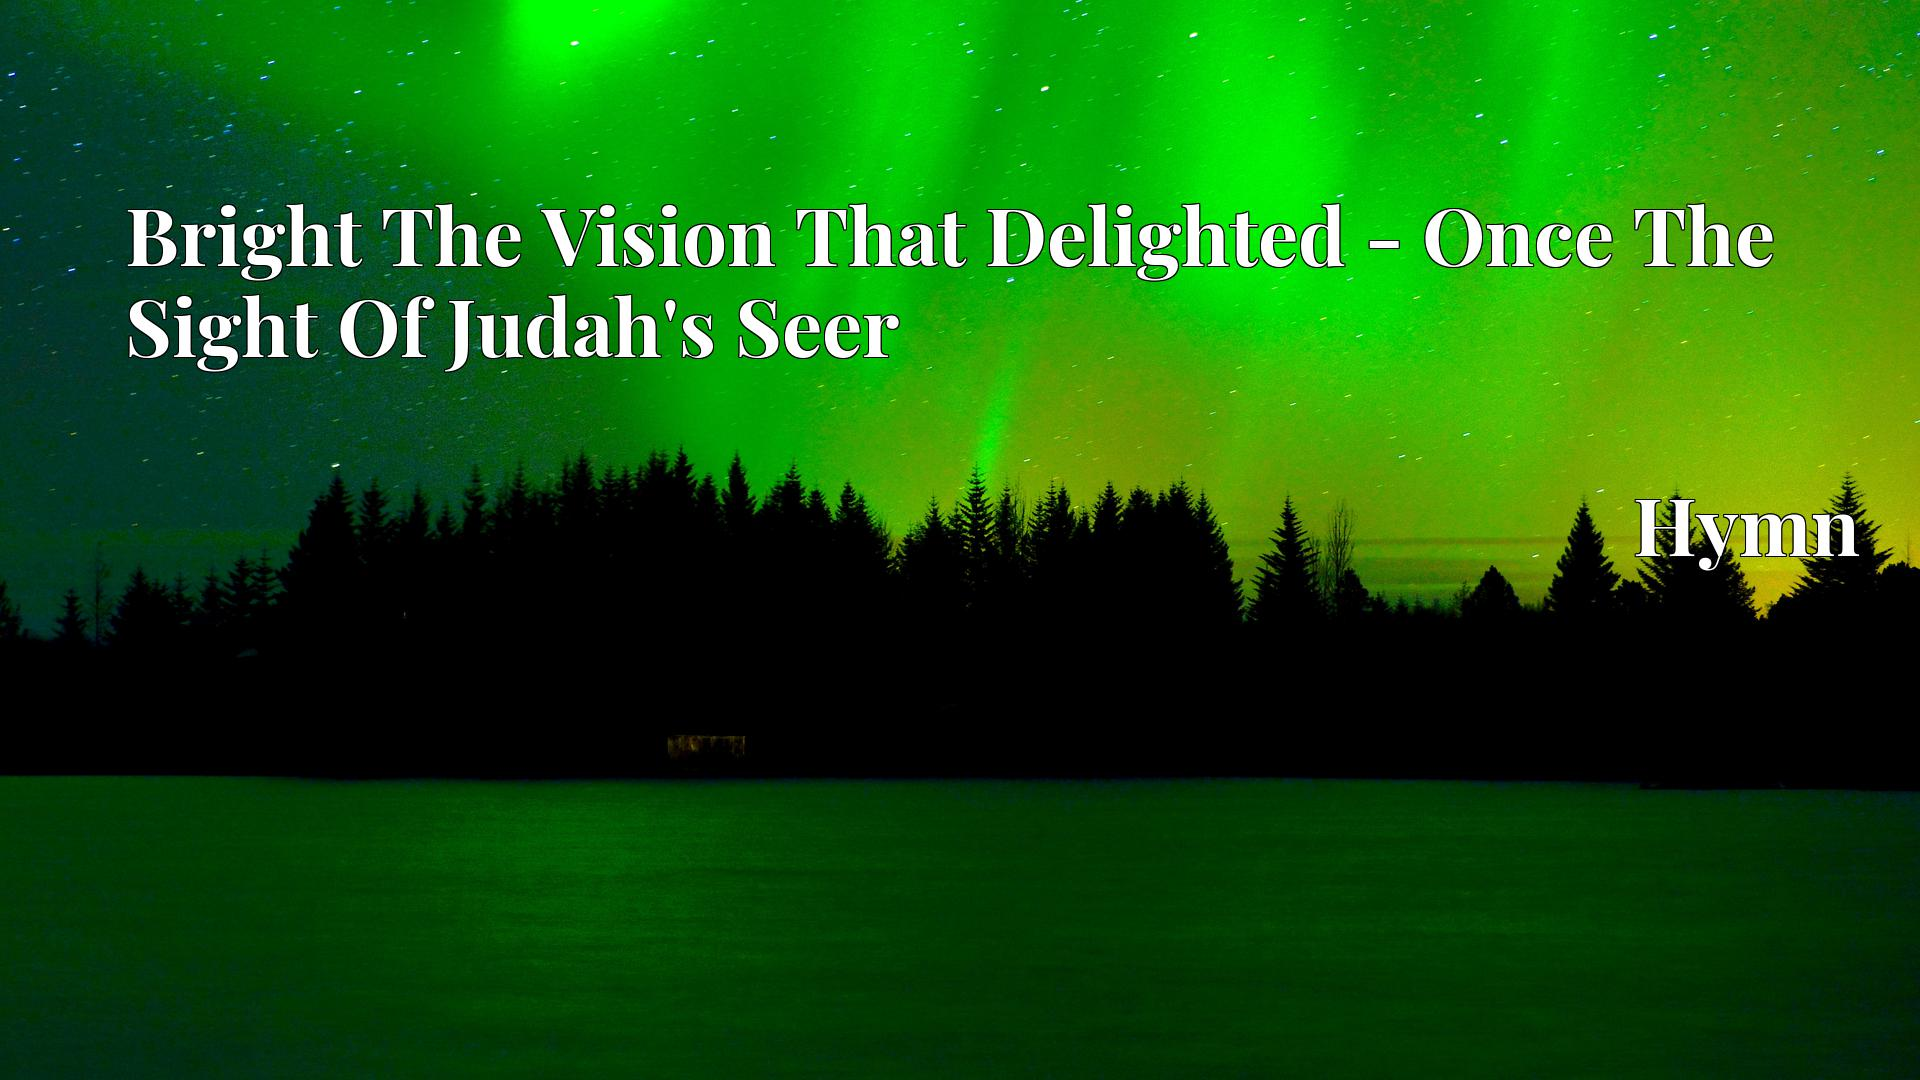 Bright The Vision That Delighted - Once The Sight Of Judah's Seer Hymn